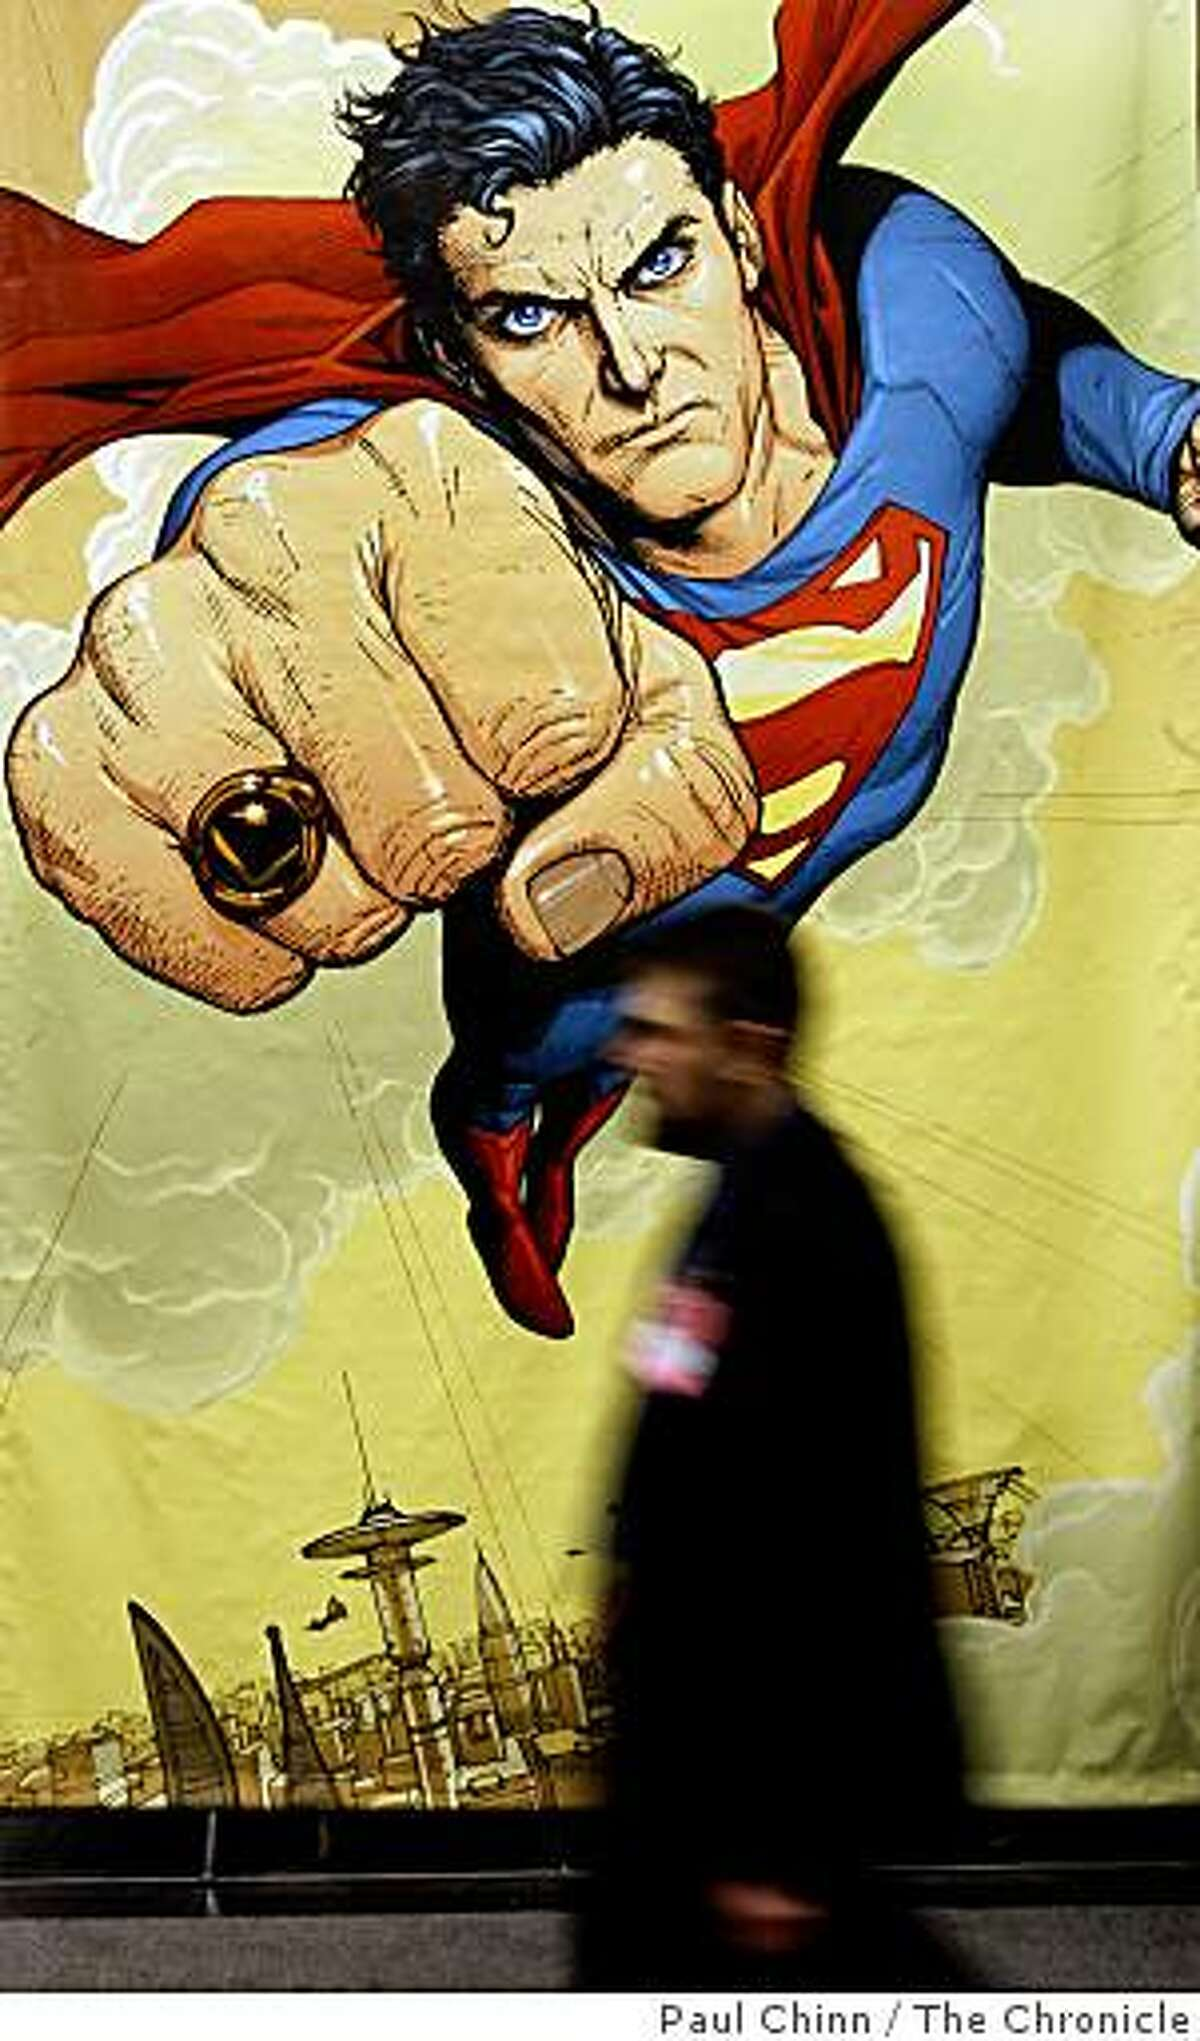 A poster of Superman dwarfs comic book fans at the WonderCon comic book convention in San Francisco, Calif., on Saturday, Feb. 28, 2009.